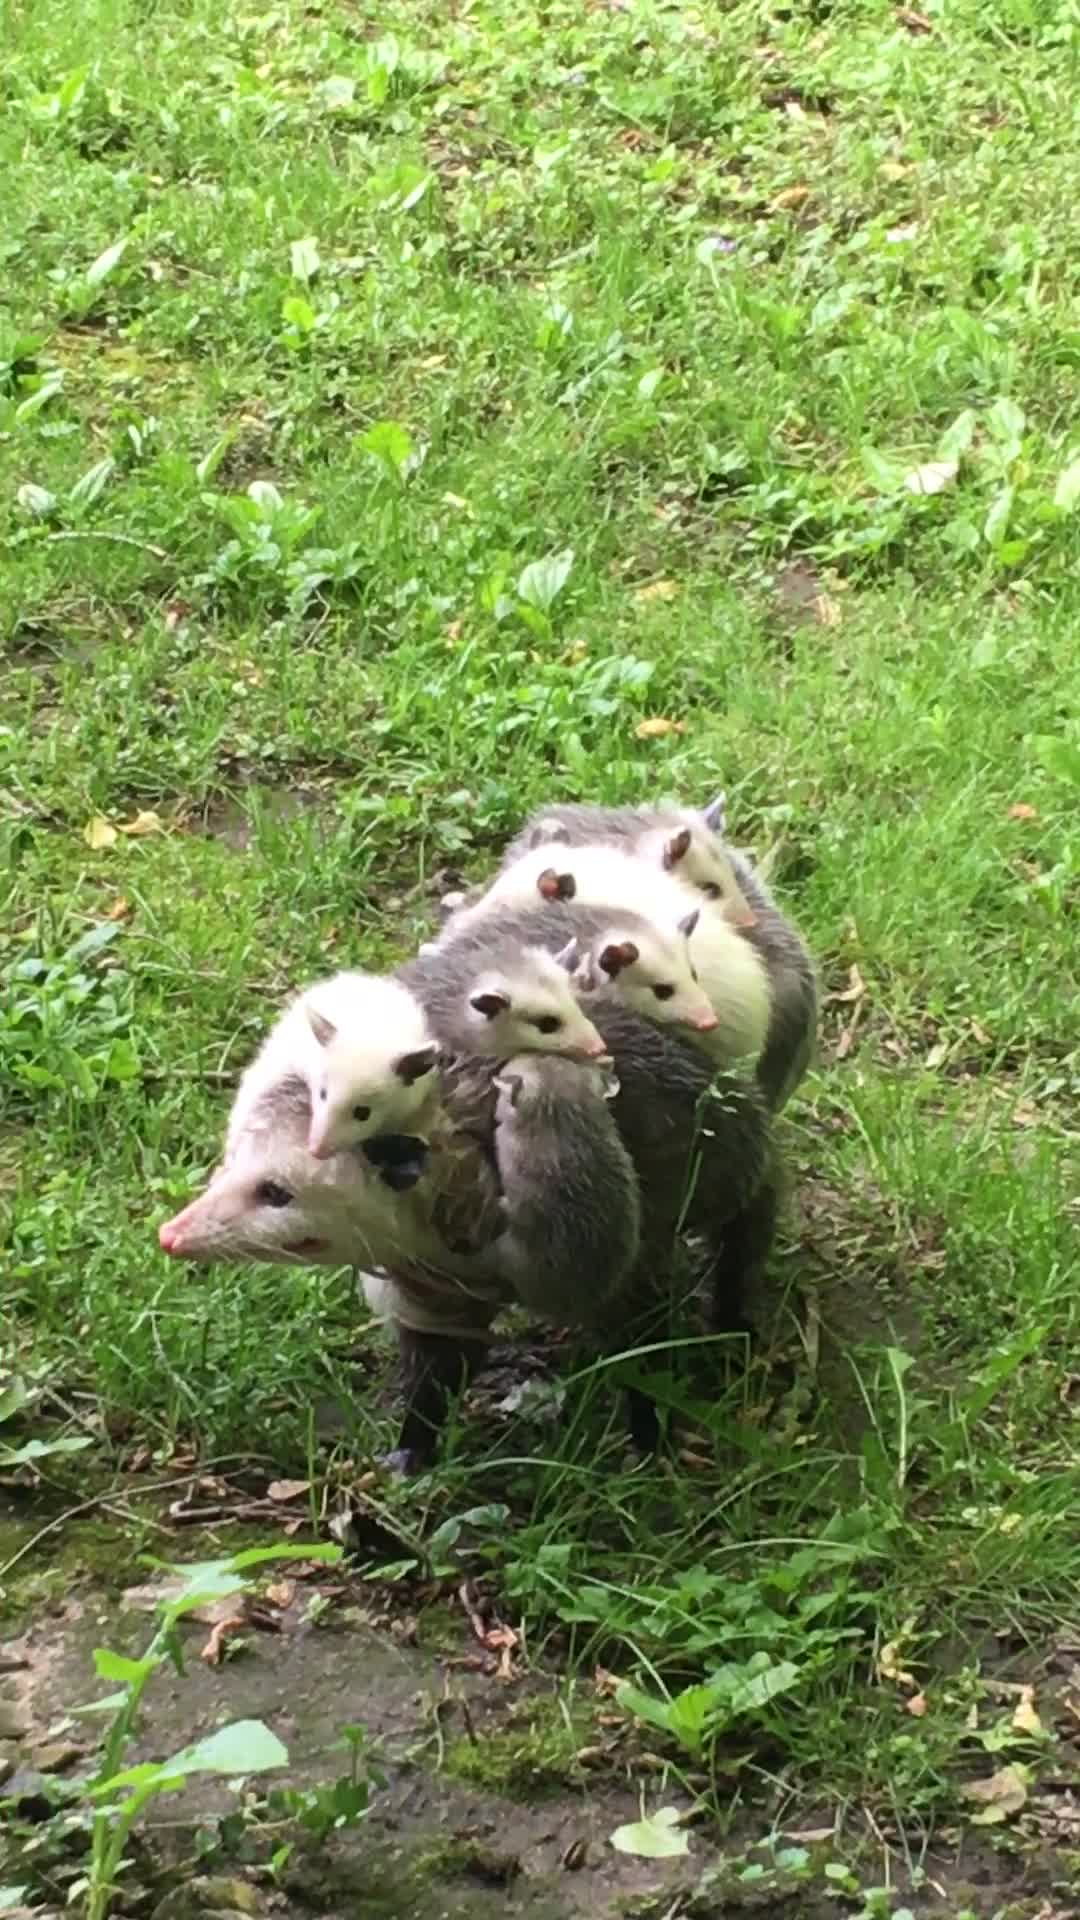 Baby Possums Go For a Ride